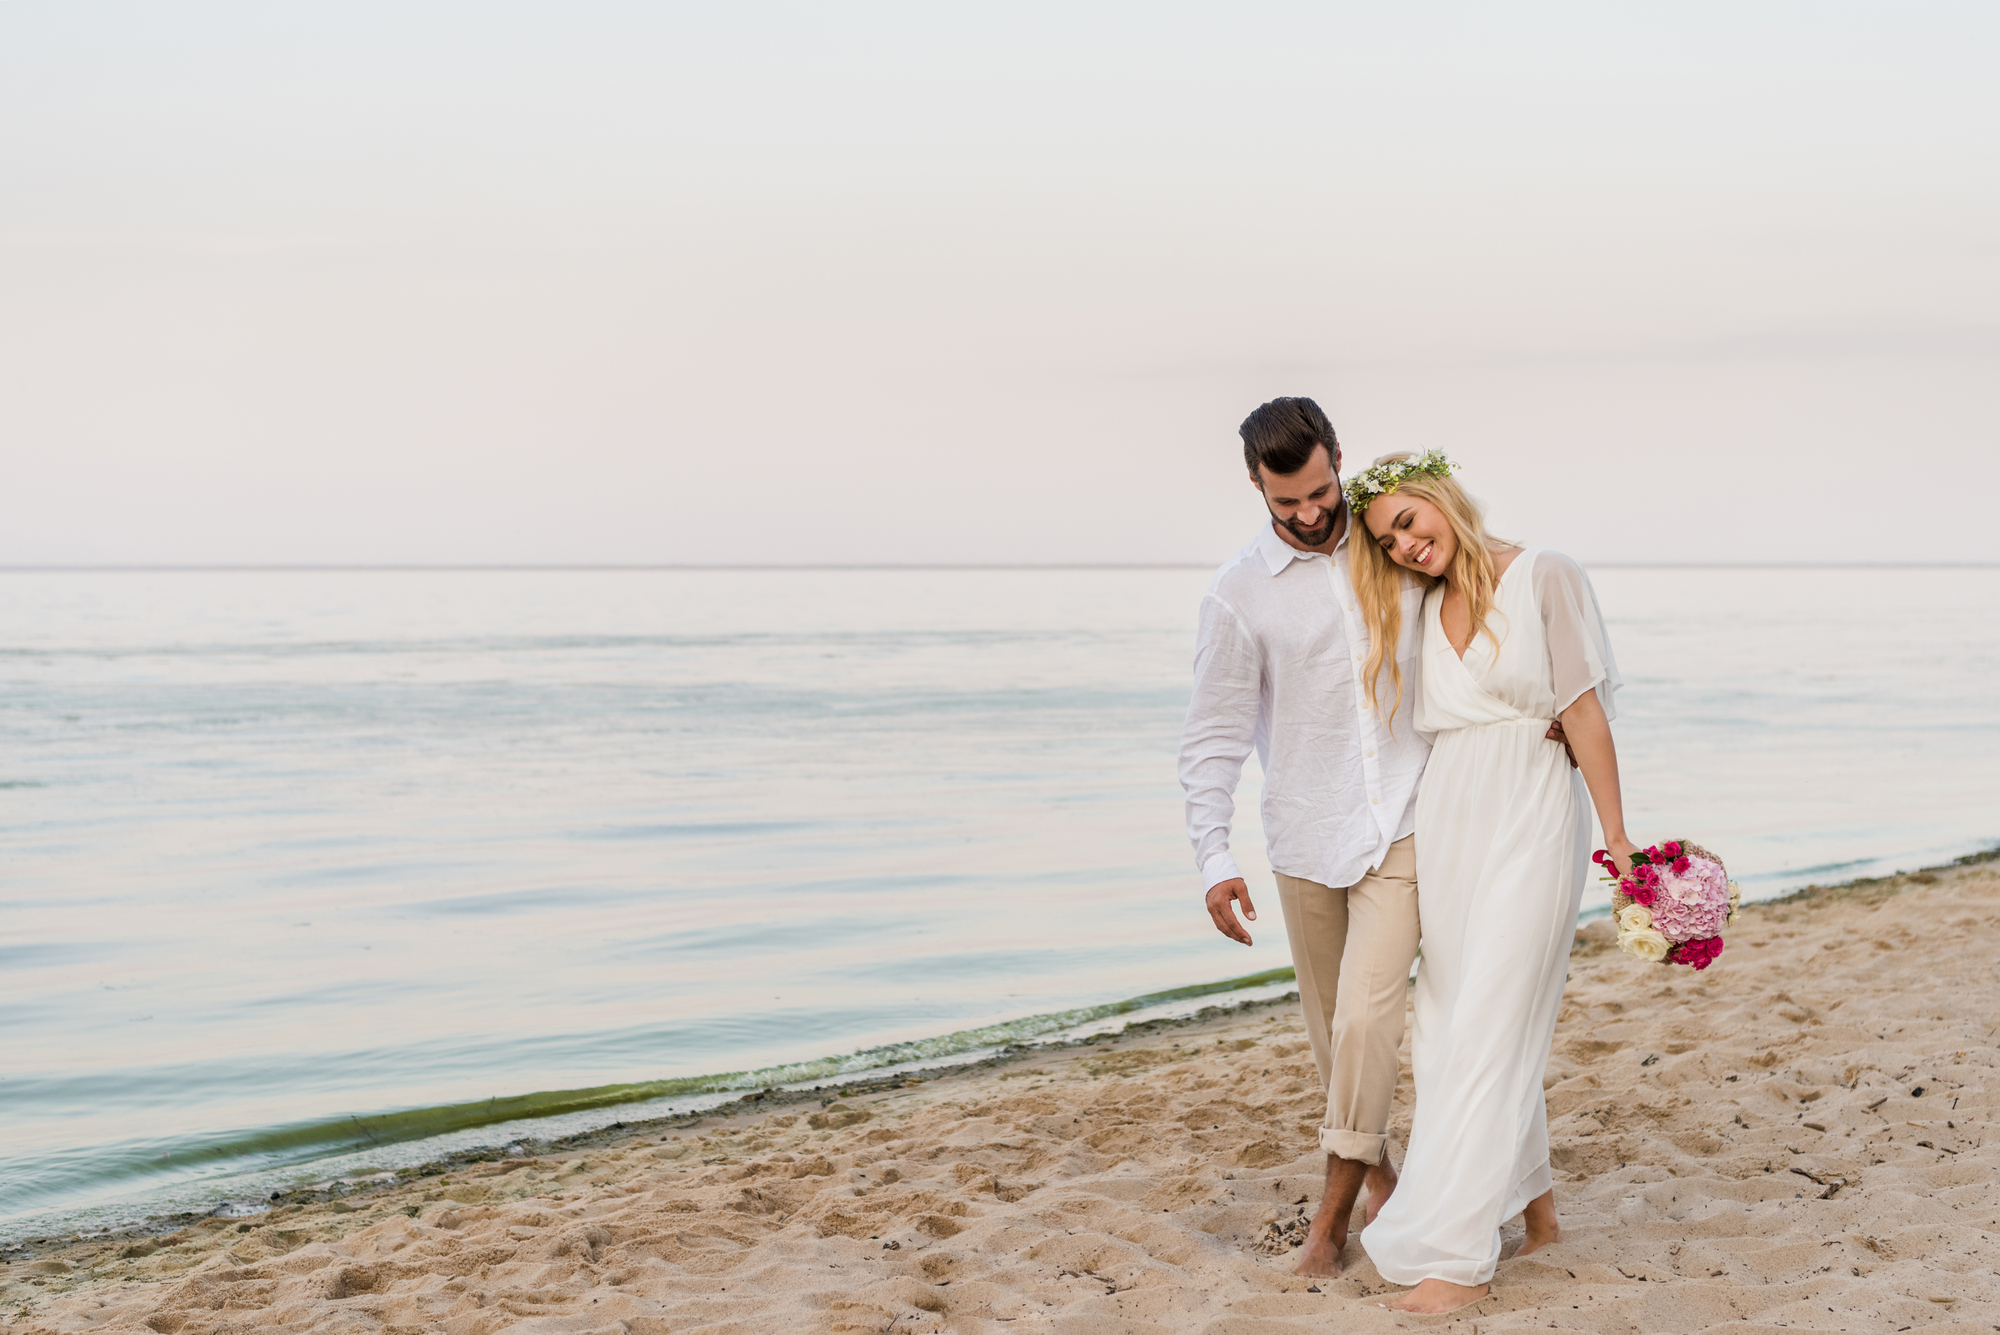 The 10 Habits of a Happy Marriage